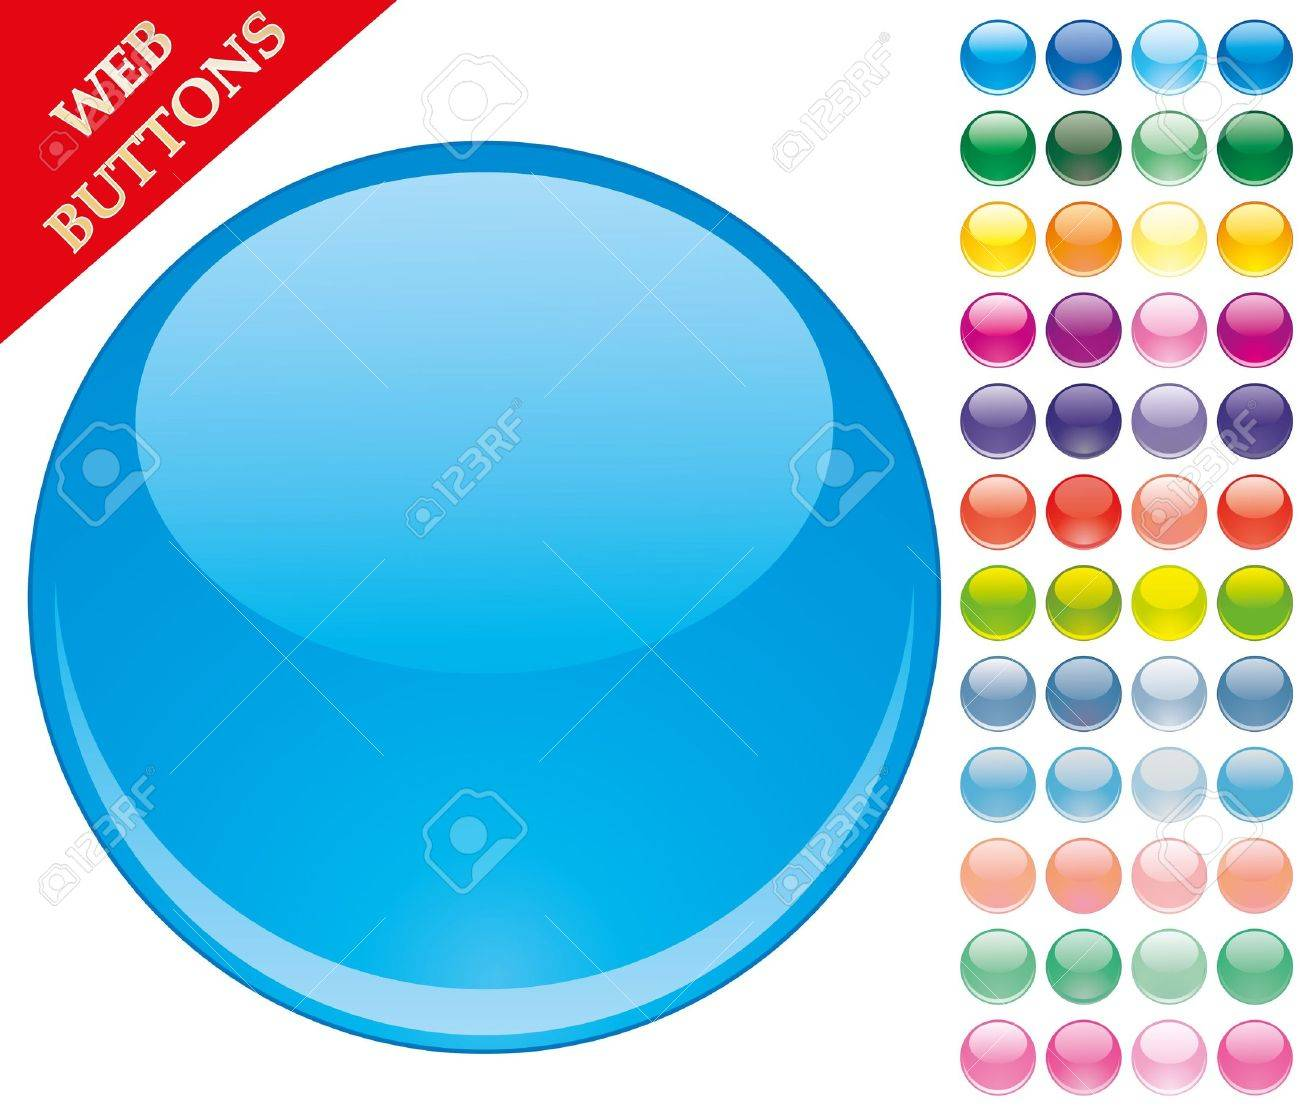 Set of 49 colored glass buttons, glossy icons, web spheres,   illustration Stock Vector - 8003788